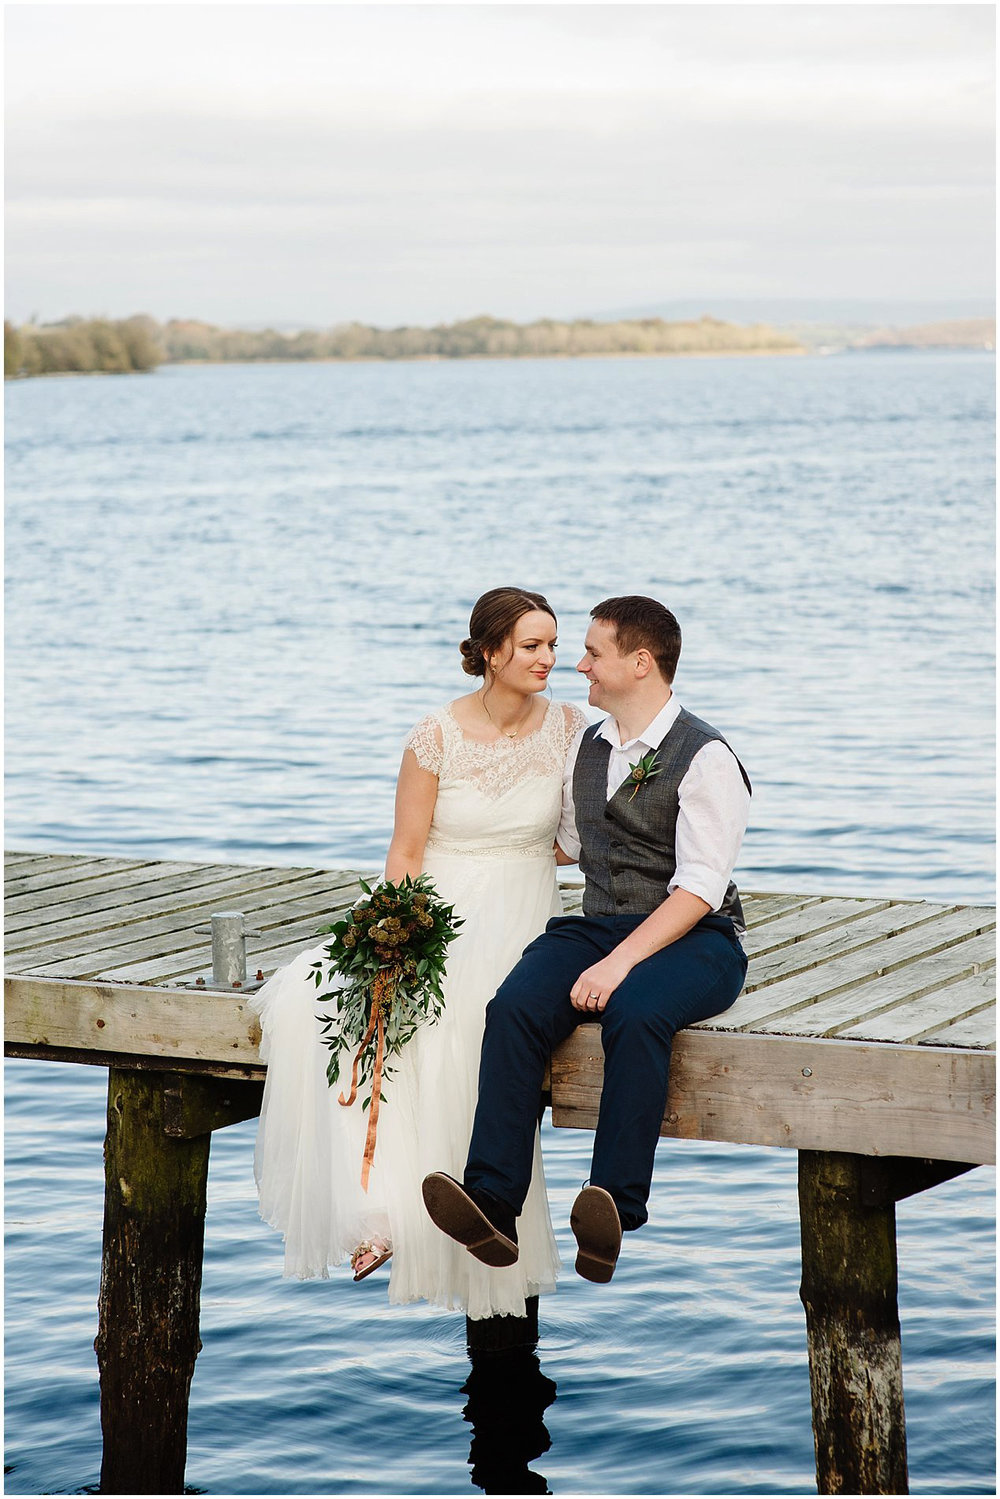 laura_alun_lusty_beg_island_wedding_jude_browne_photography_0095.jpg